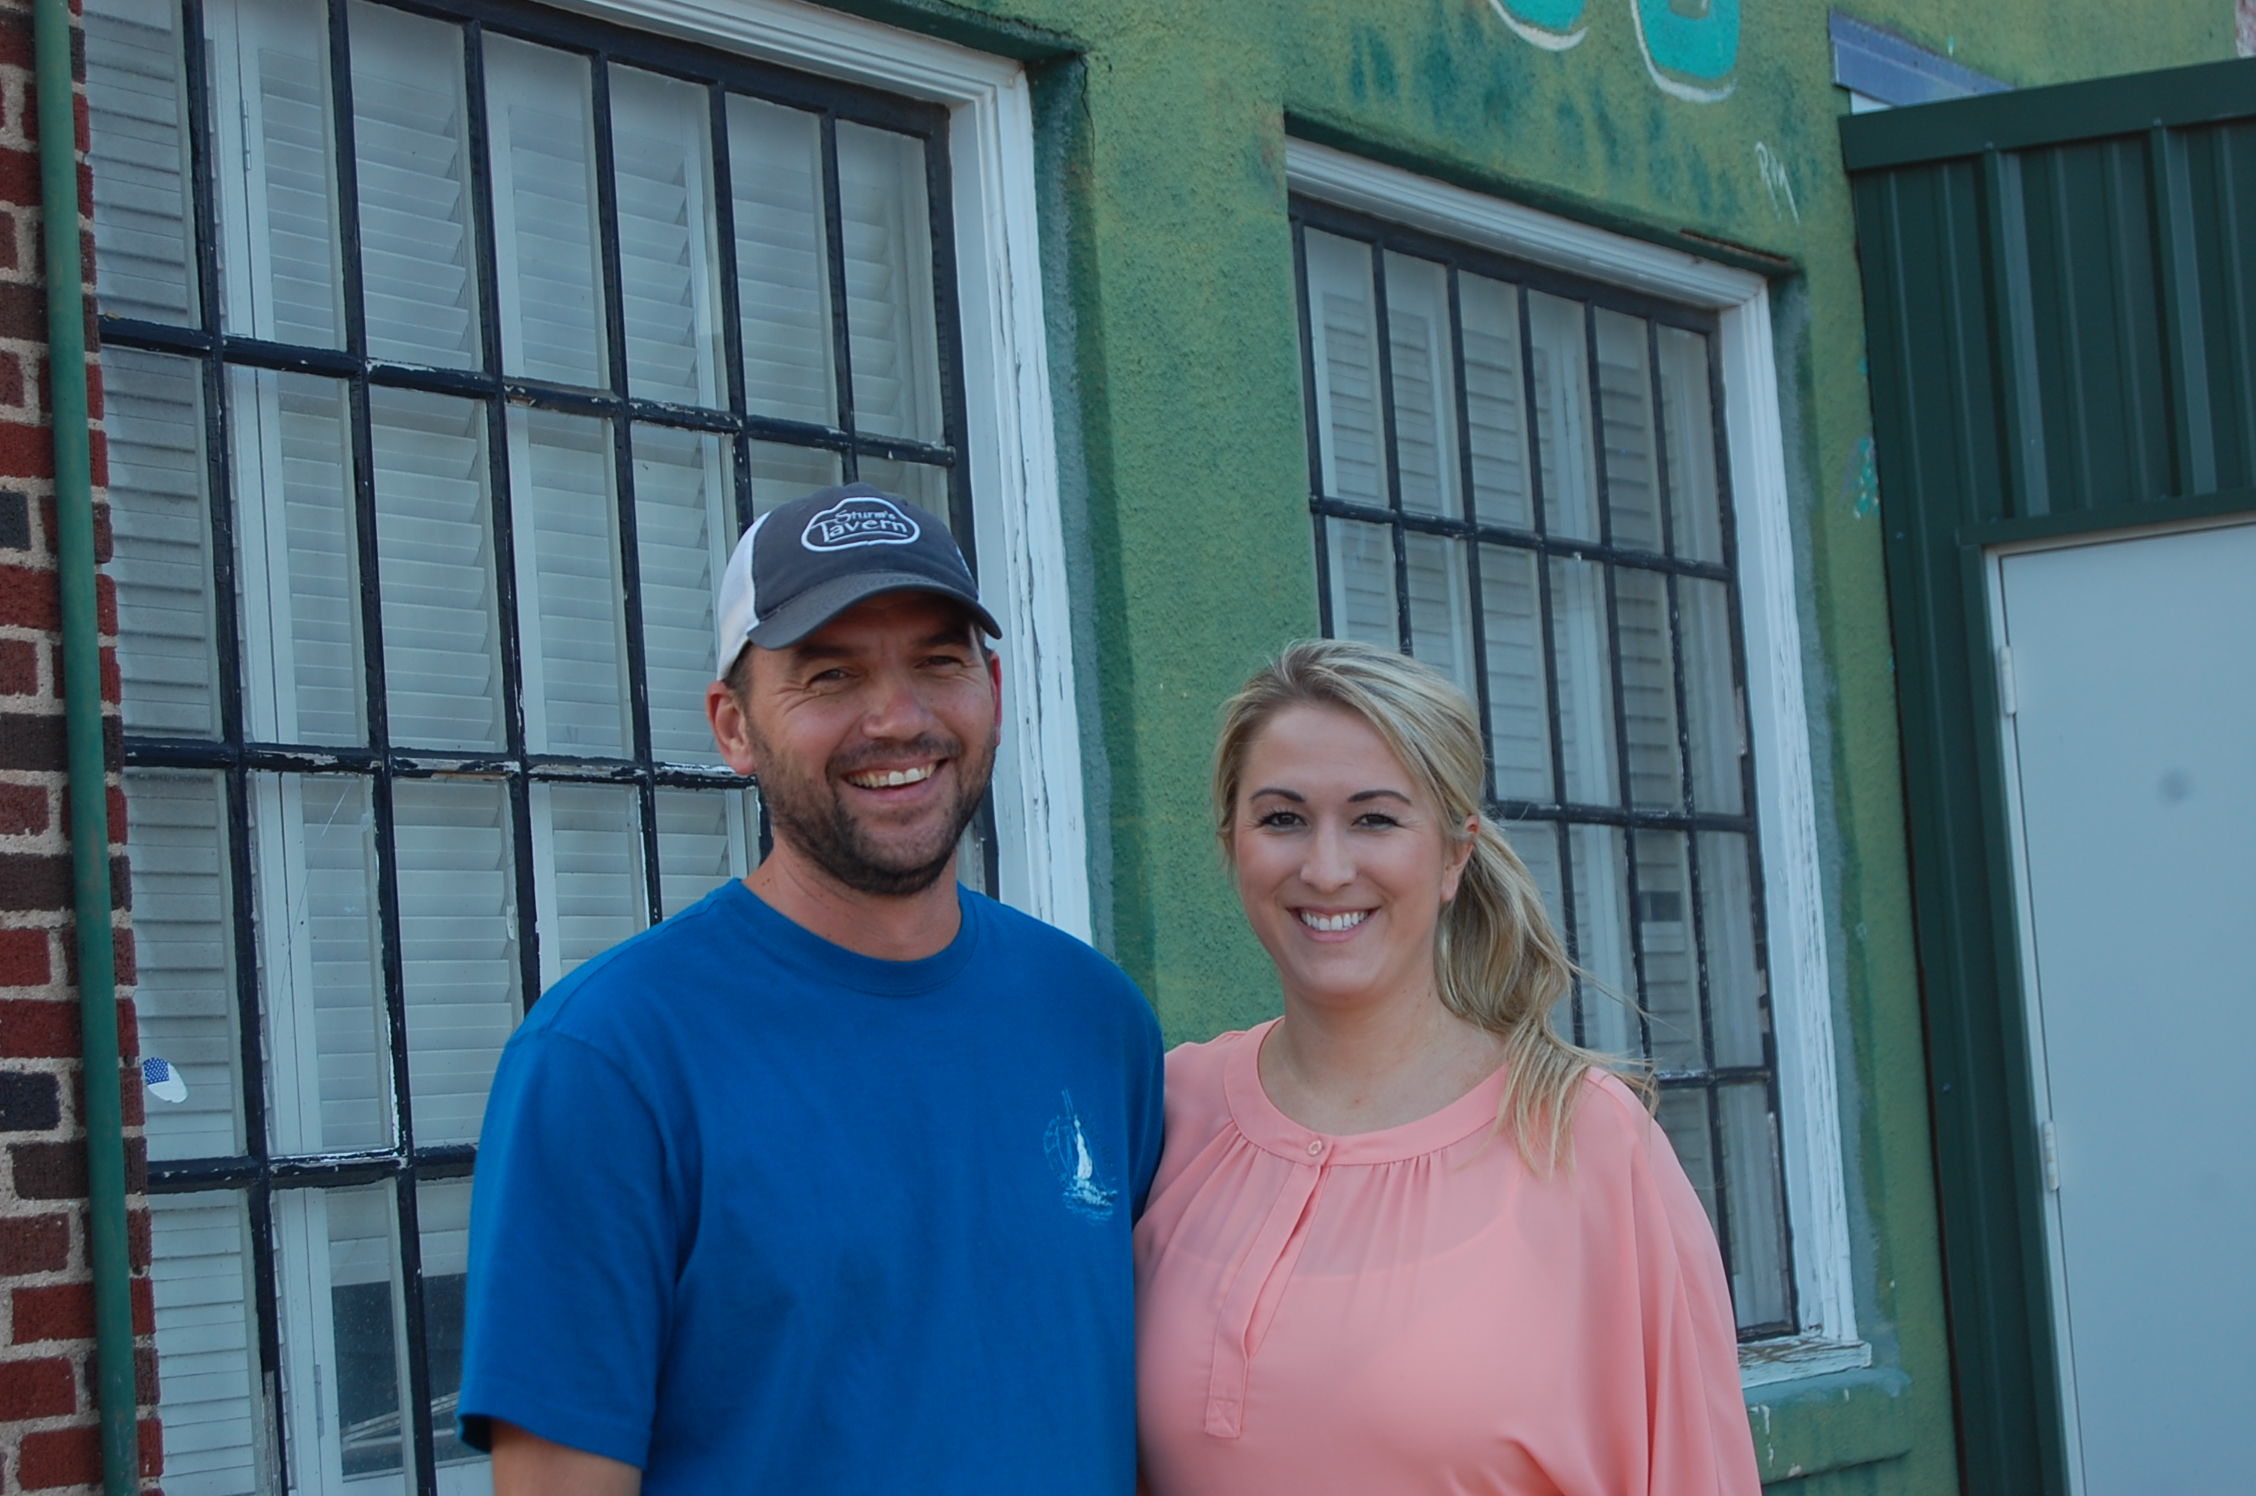 Cody Sturm and Katie Bollinger own and operate Blaine's Pub today.